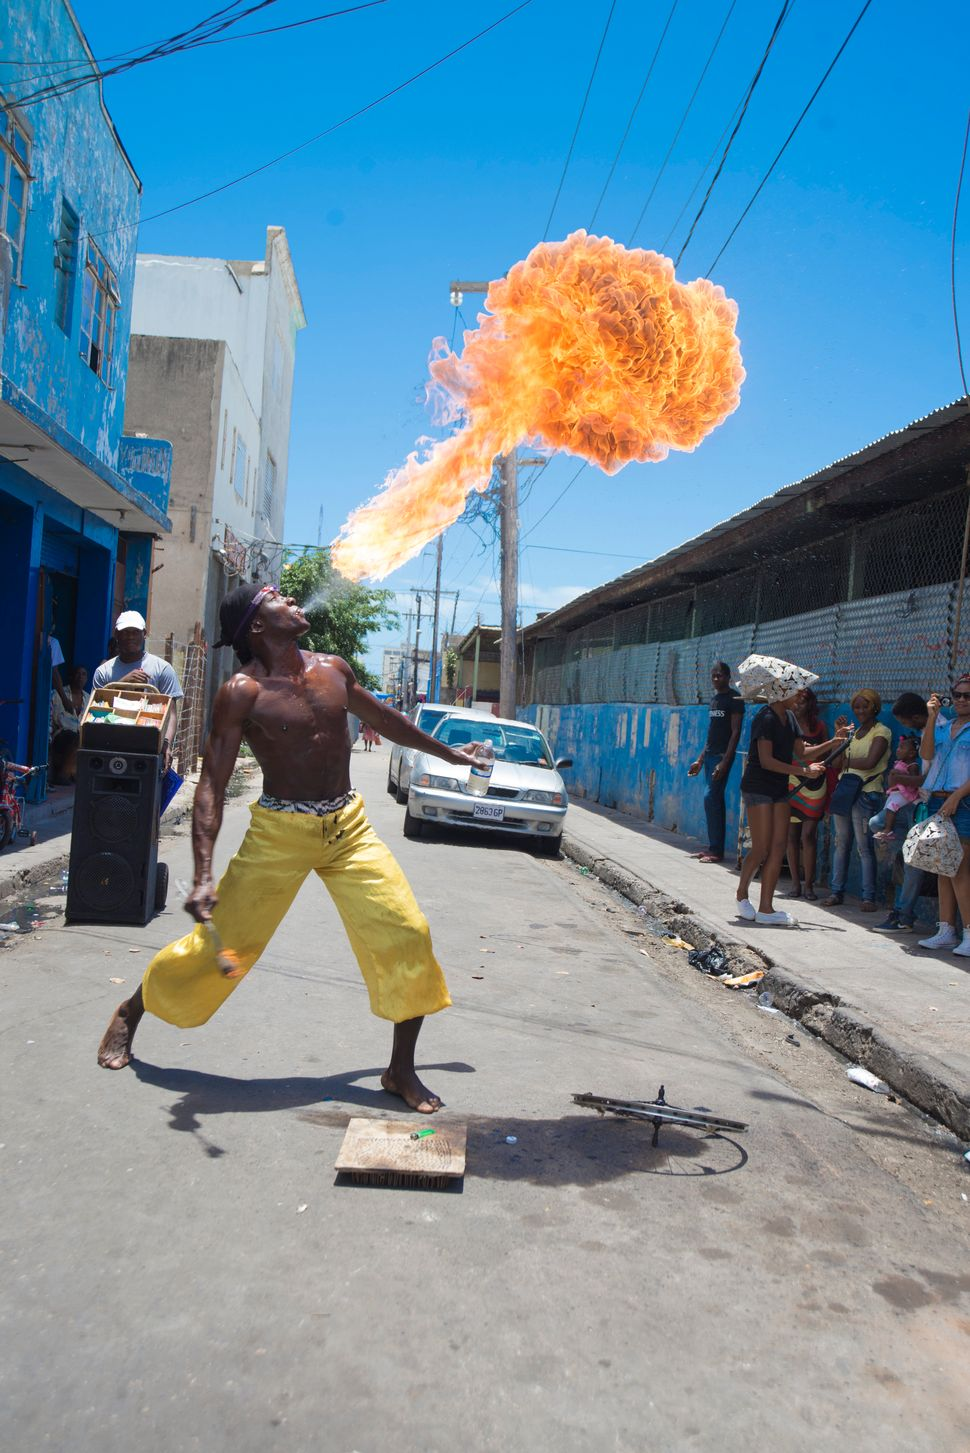 Charles Campbell, Actor Boy: Fractal Engagement, performance, April 21, 2014, Kingston, Jamaica. Photograph: Marvin Bartley.